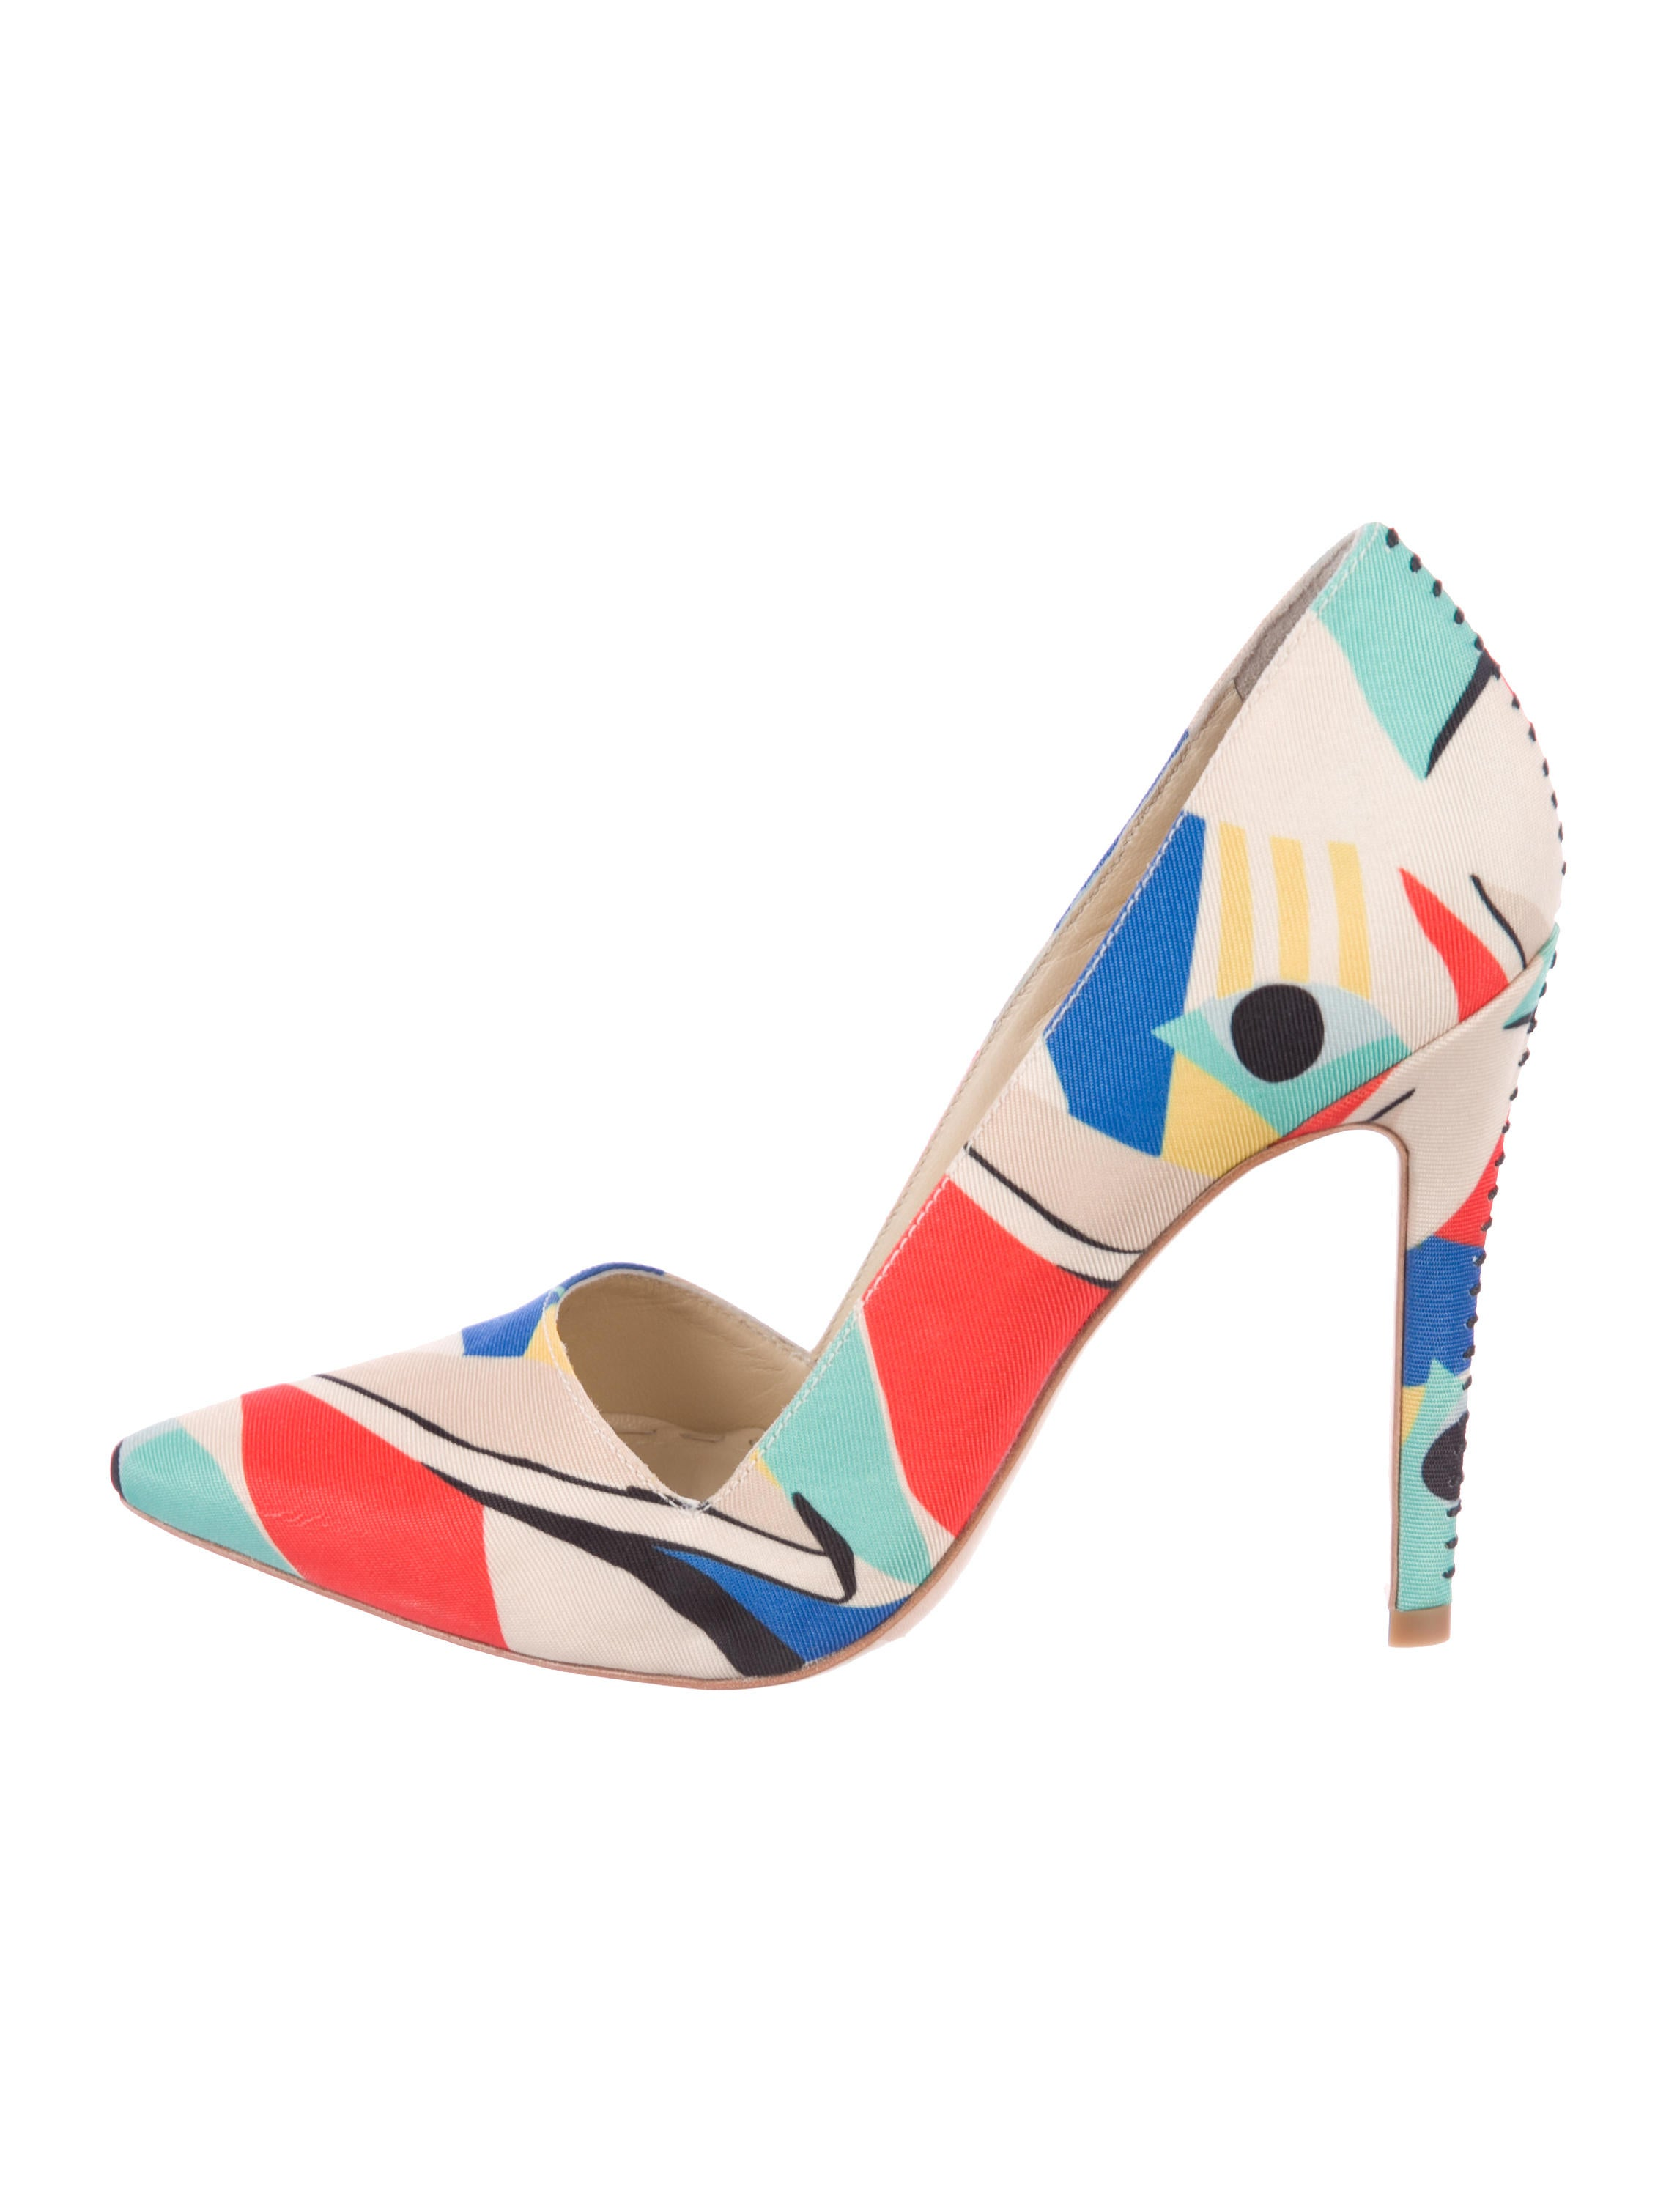 wide range of for sale Alice + Olivia Dina Printed Pumps w/ Tags good selling sale online clearance from china wkgbNmebja